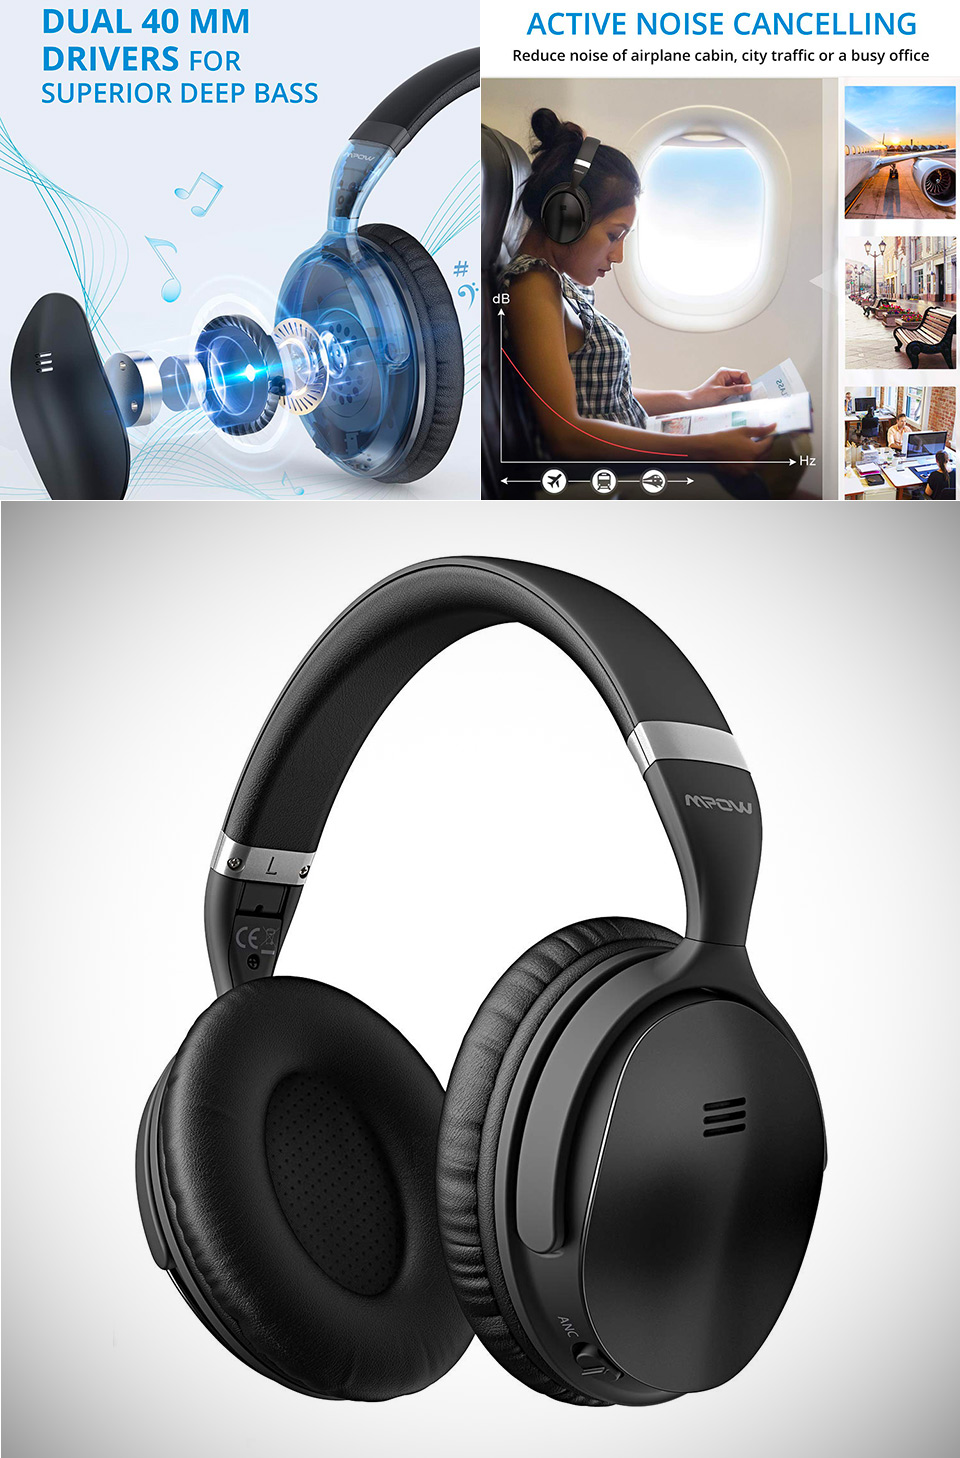 Mpow H5 Active Noise Canceling Headphones